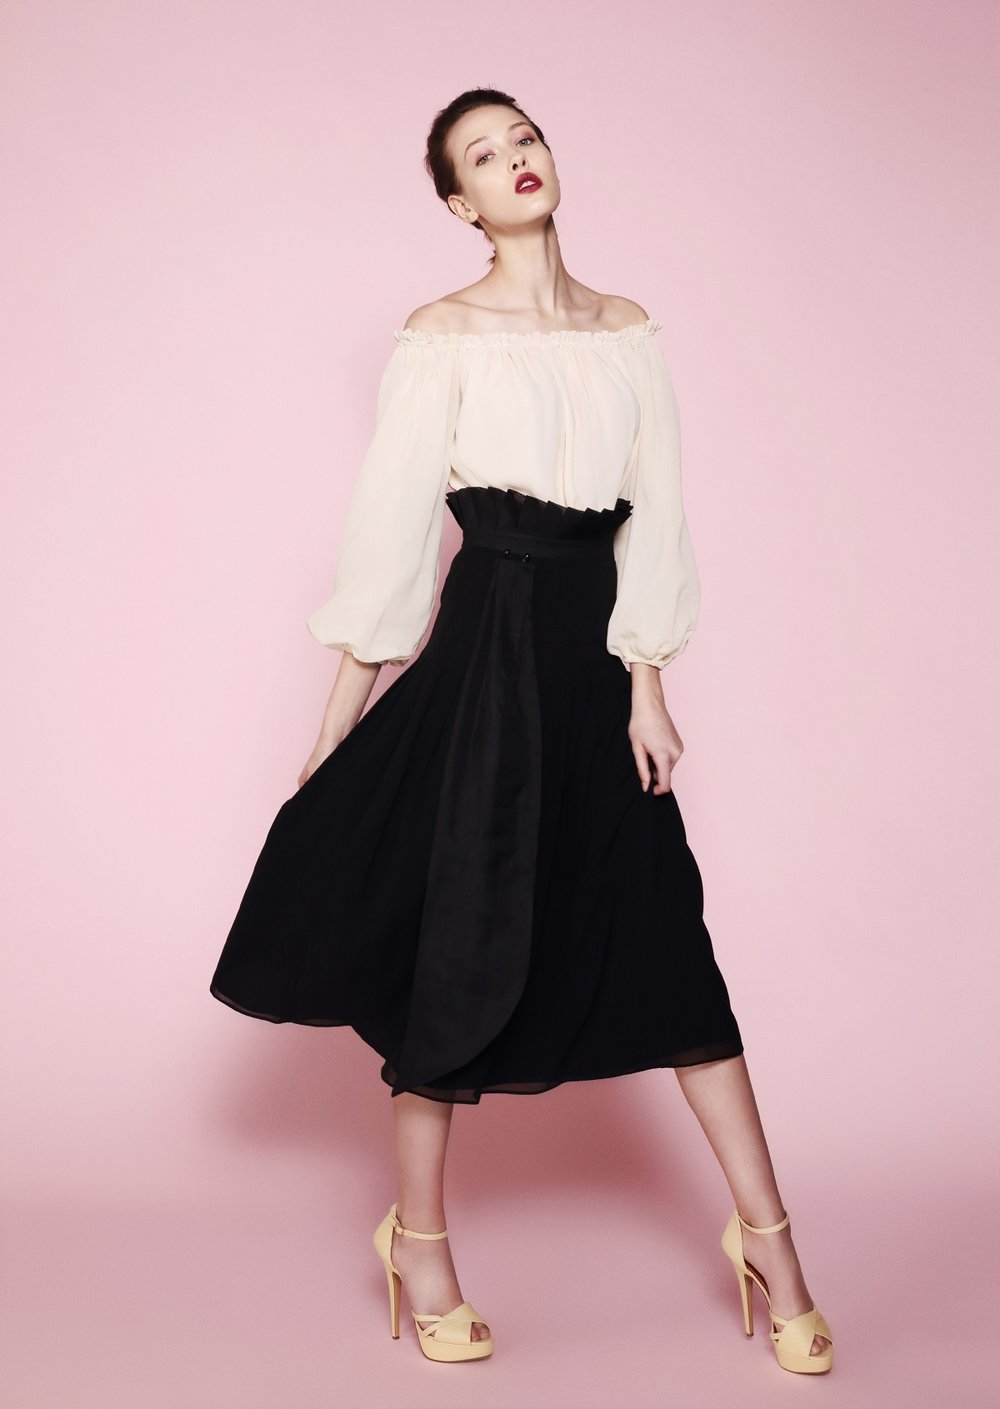 3. Romance - In this look we mixed sumptuous fabrics with romance and ethereal feeling of freedom, of femininity and most importantly of love. The pale silk chiffon blouse features open back and pure silk lining. The full sleeves add romance to the whole look. Worn under a jacket, it can be you go-to item for the office look.The black high-waisted silk georgette skirt features organza pleats that go all the way up and detachable organza train in front. This ensemble will be perfect for these romantic garden parties in September and October, when days are still warm and nights are still long. #nightislong #romance